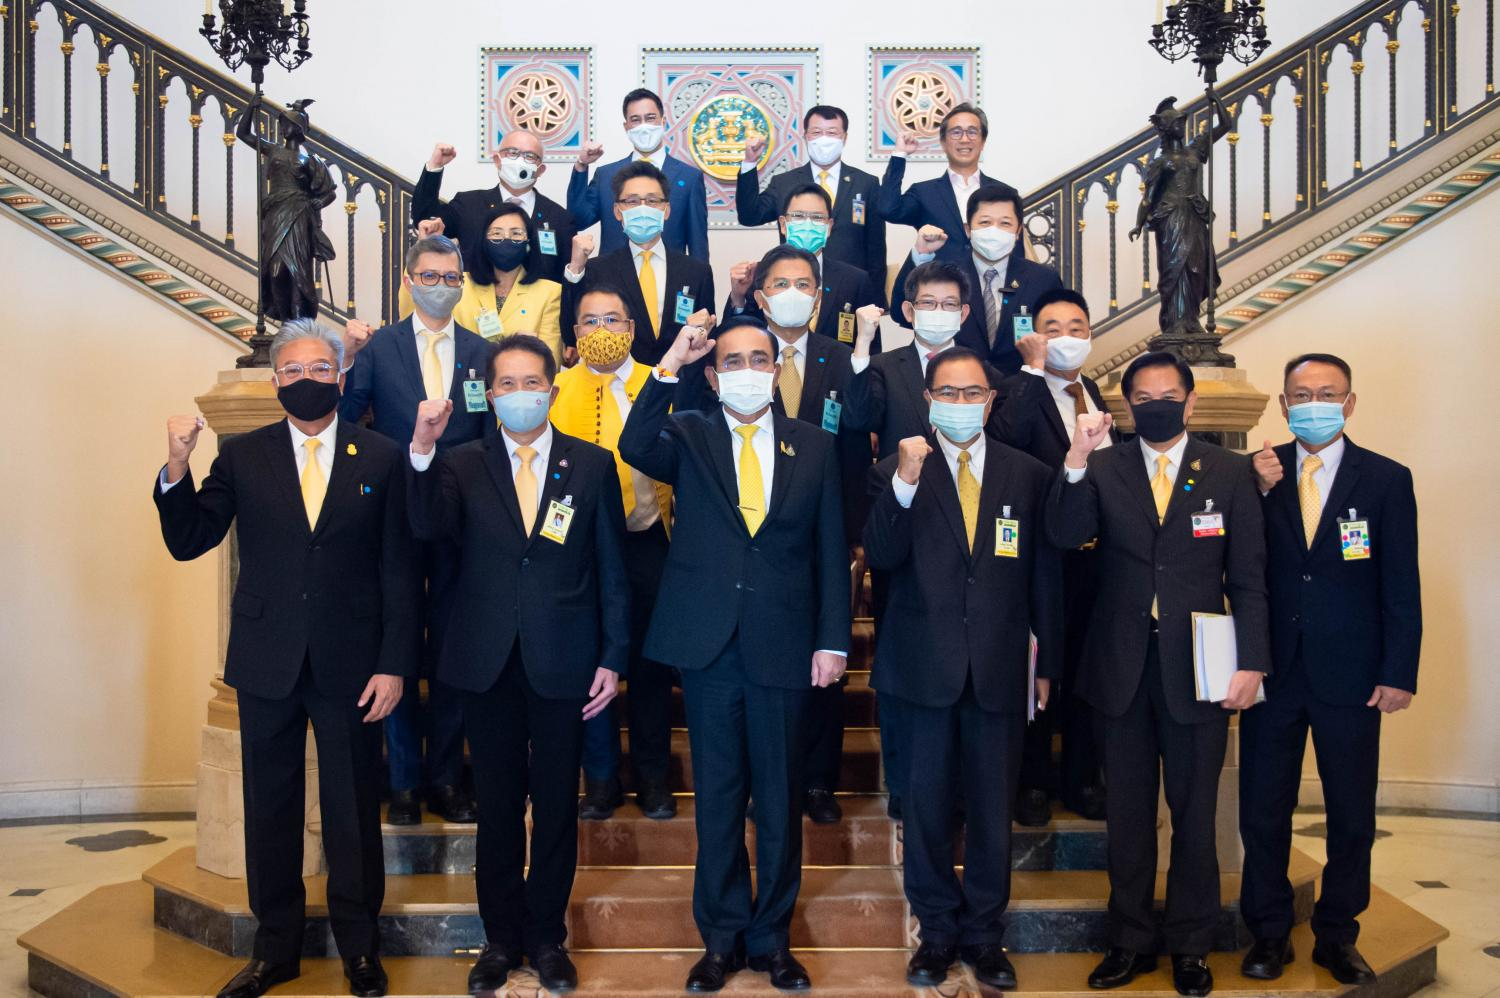 Gen Prayut (front row, third left) with representatives of the private sector after a meeting on economic recovery from the pandemic. (Government House photo)